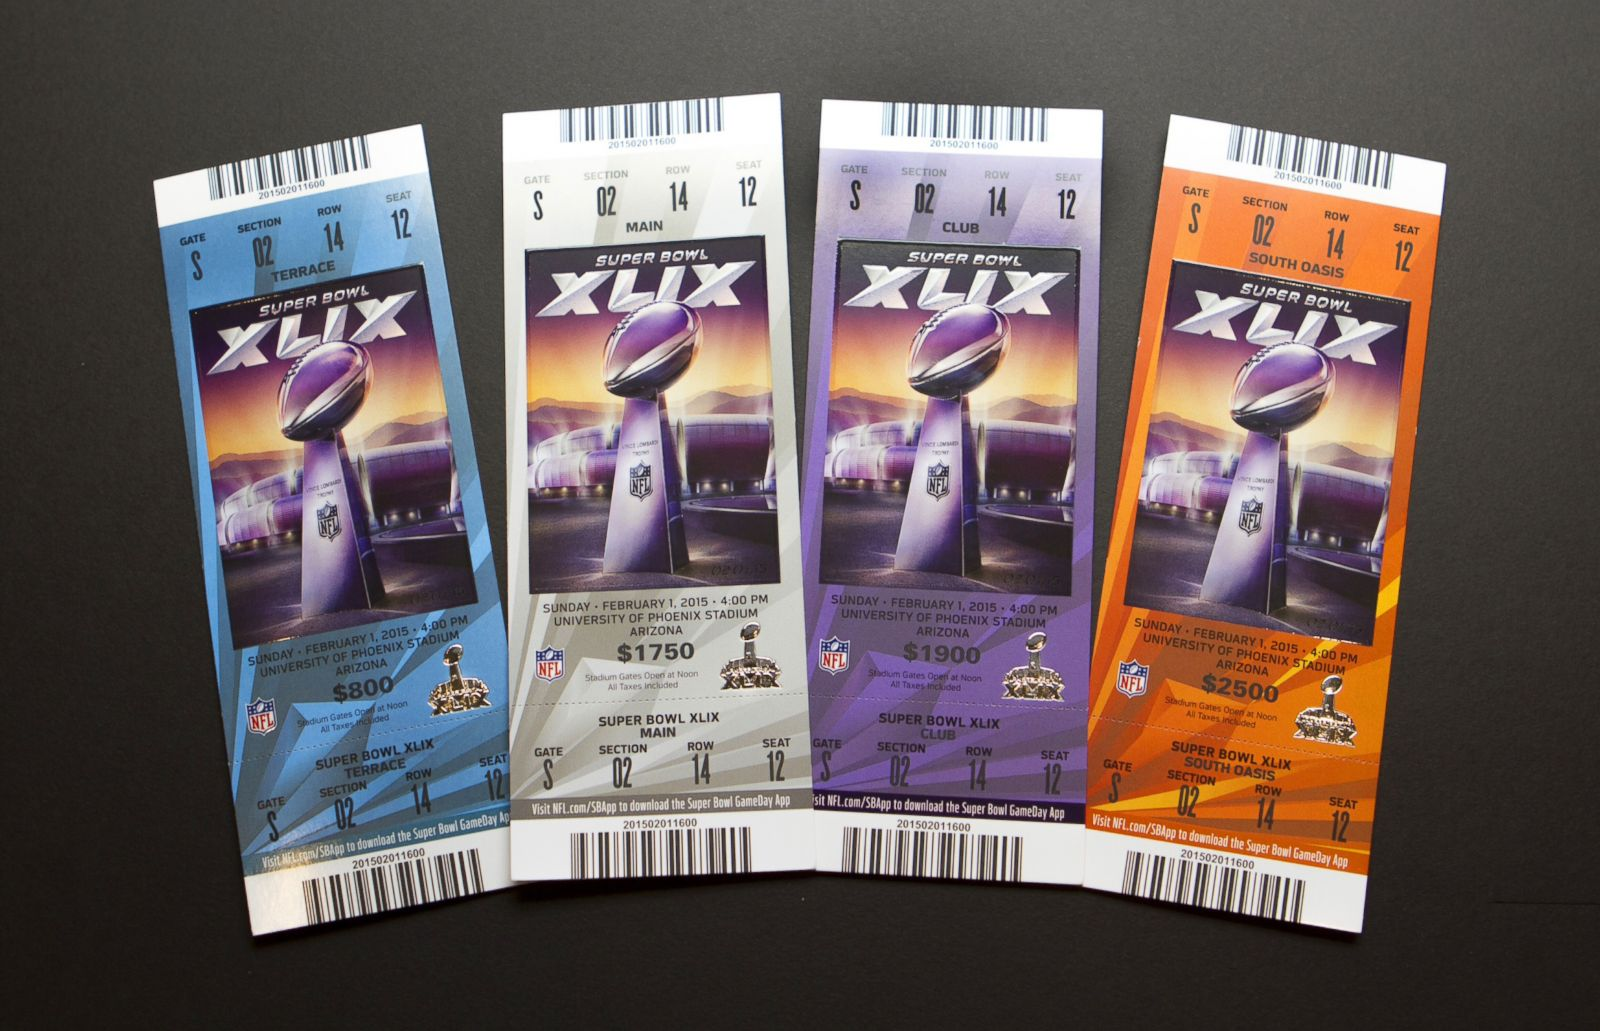 super bowl an evolution of tickets in photos photos abc news